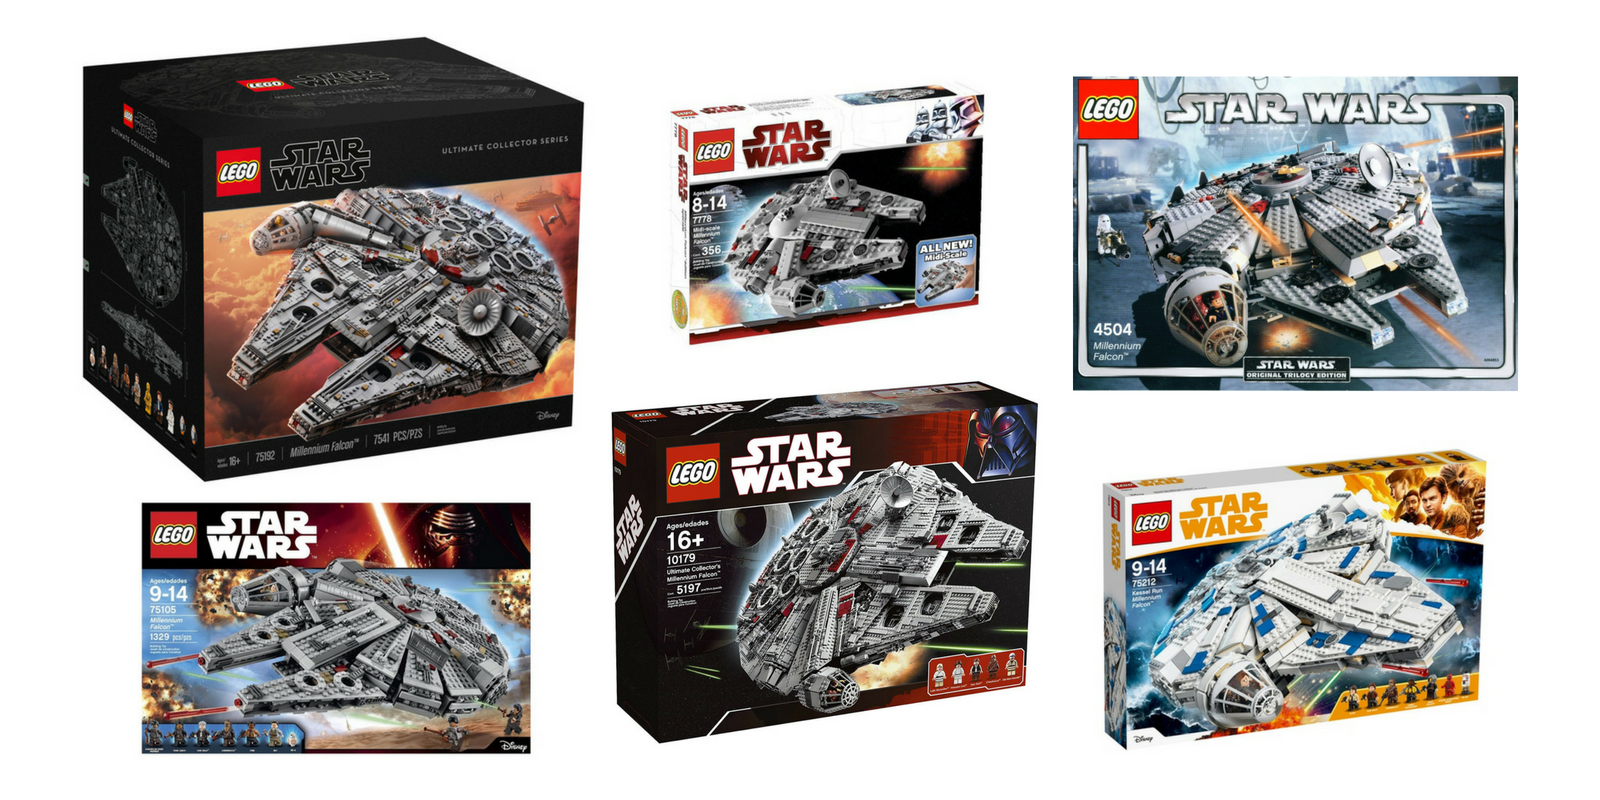 627e535c LEGO Star Wars Millennium Falcon Sets, Which is the Best?